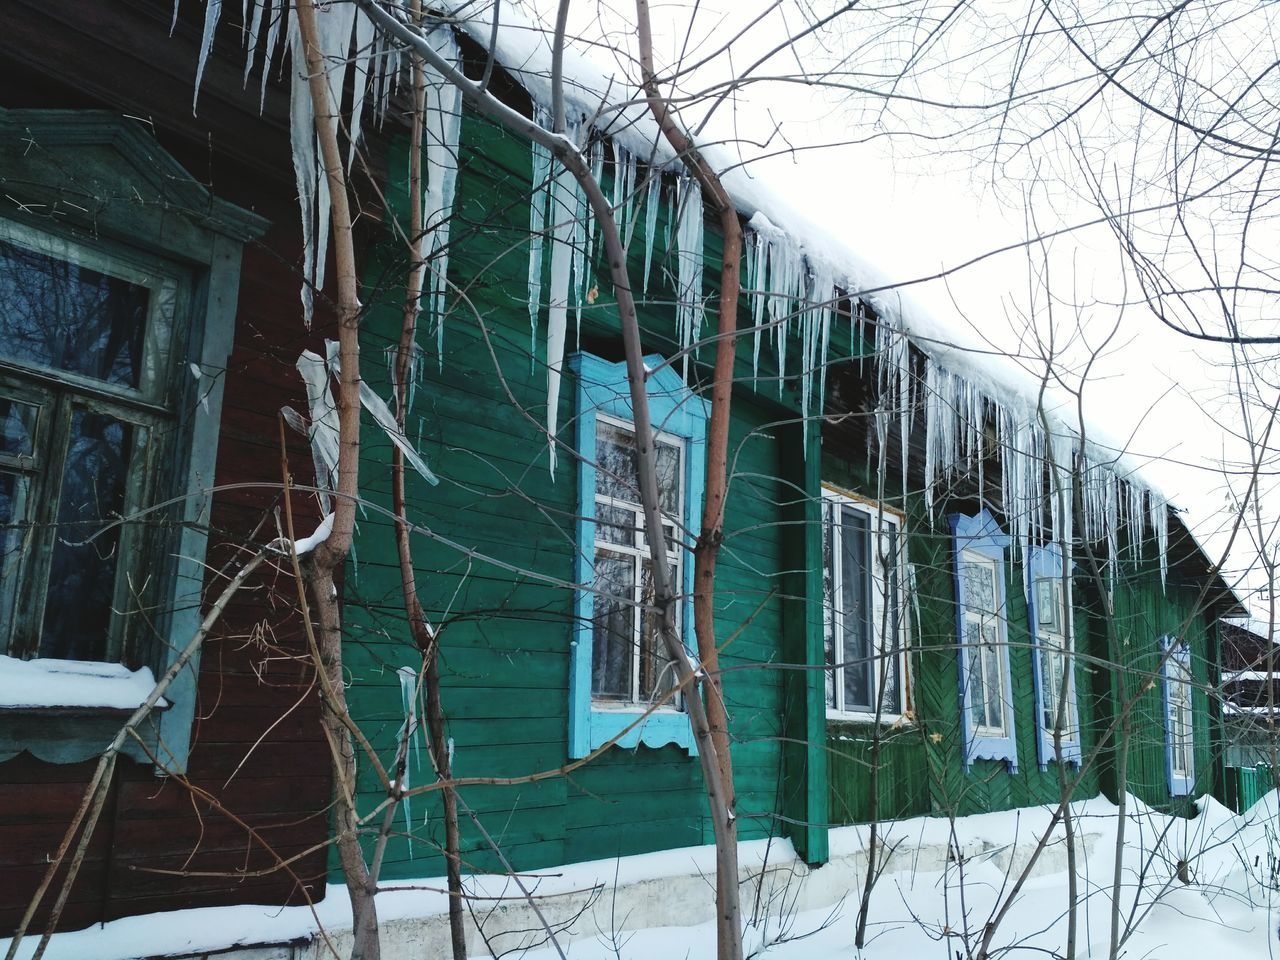 No People Cold Temperature Built Structure Nature Architecture Outdoors Snow Winter Day Icicles Icicle Provincetown  Province Village Woodenhouse Wintertime Snow Covered Wood Winter Ufa Ufa Russia Уфа зима сосульки снег Neighborhood Map